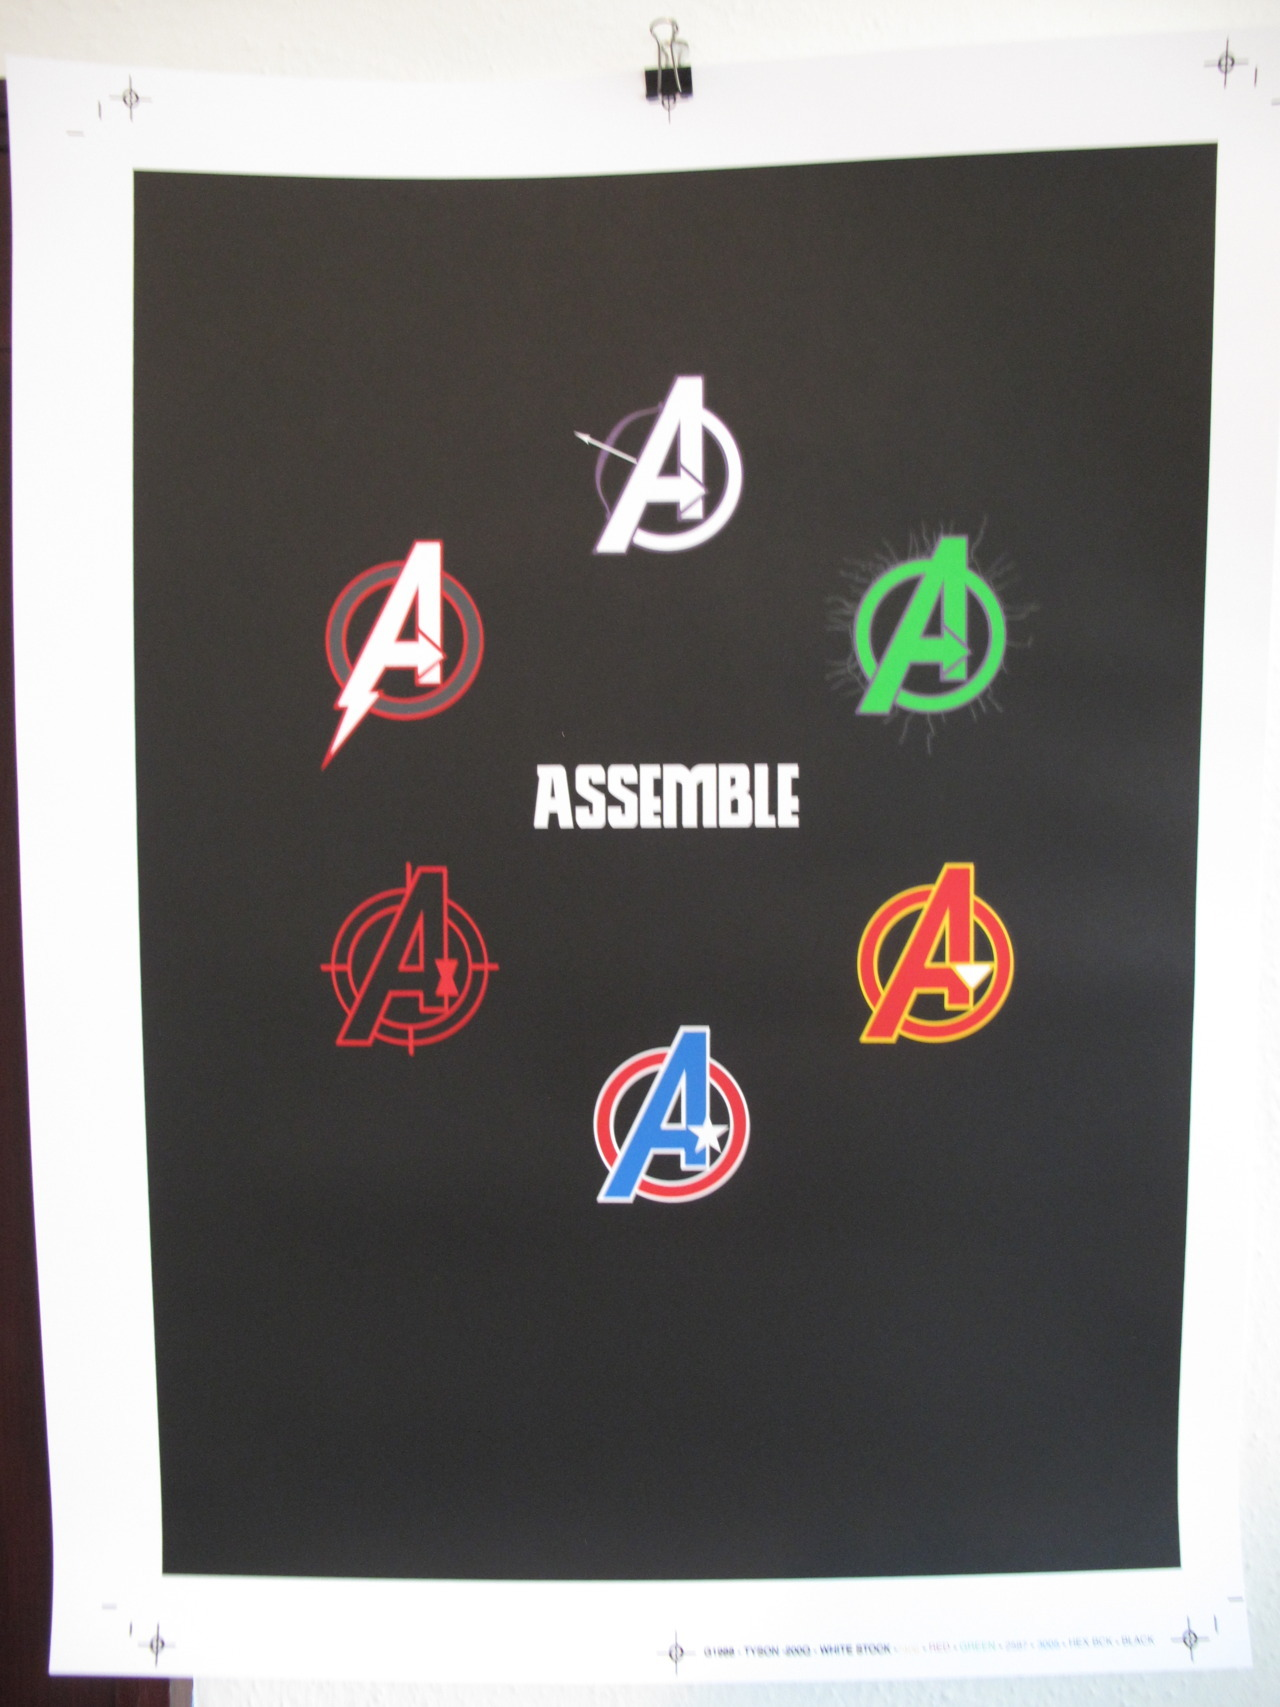 """ASSEMBLE"" BY MATT OWEN FOR GALLERY 1988'S ""ASSEMBLE"" SHOW ON MAY 3RD 7 COLORS 18"" X 24"" COUGAR 100LB. COVER IN WHITE"